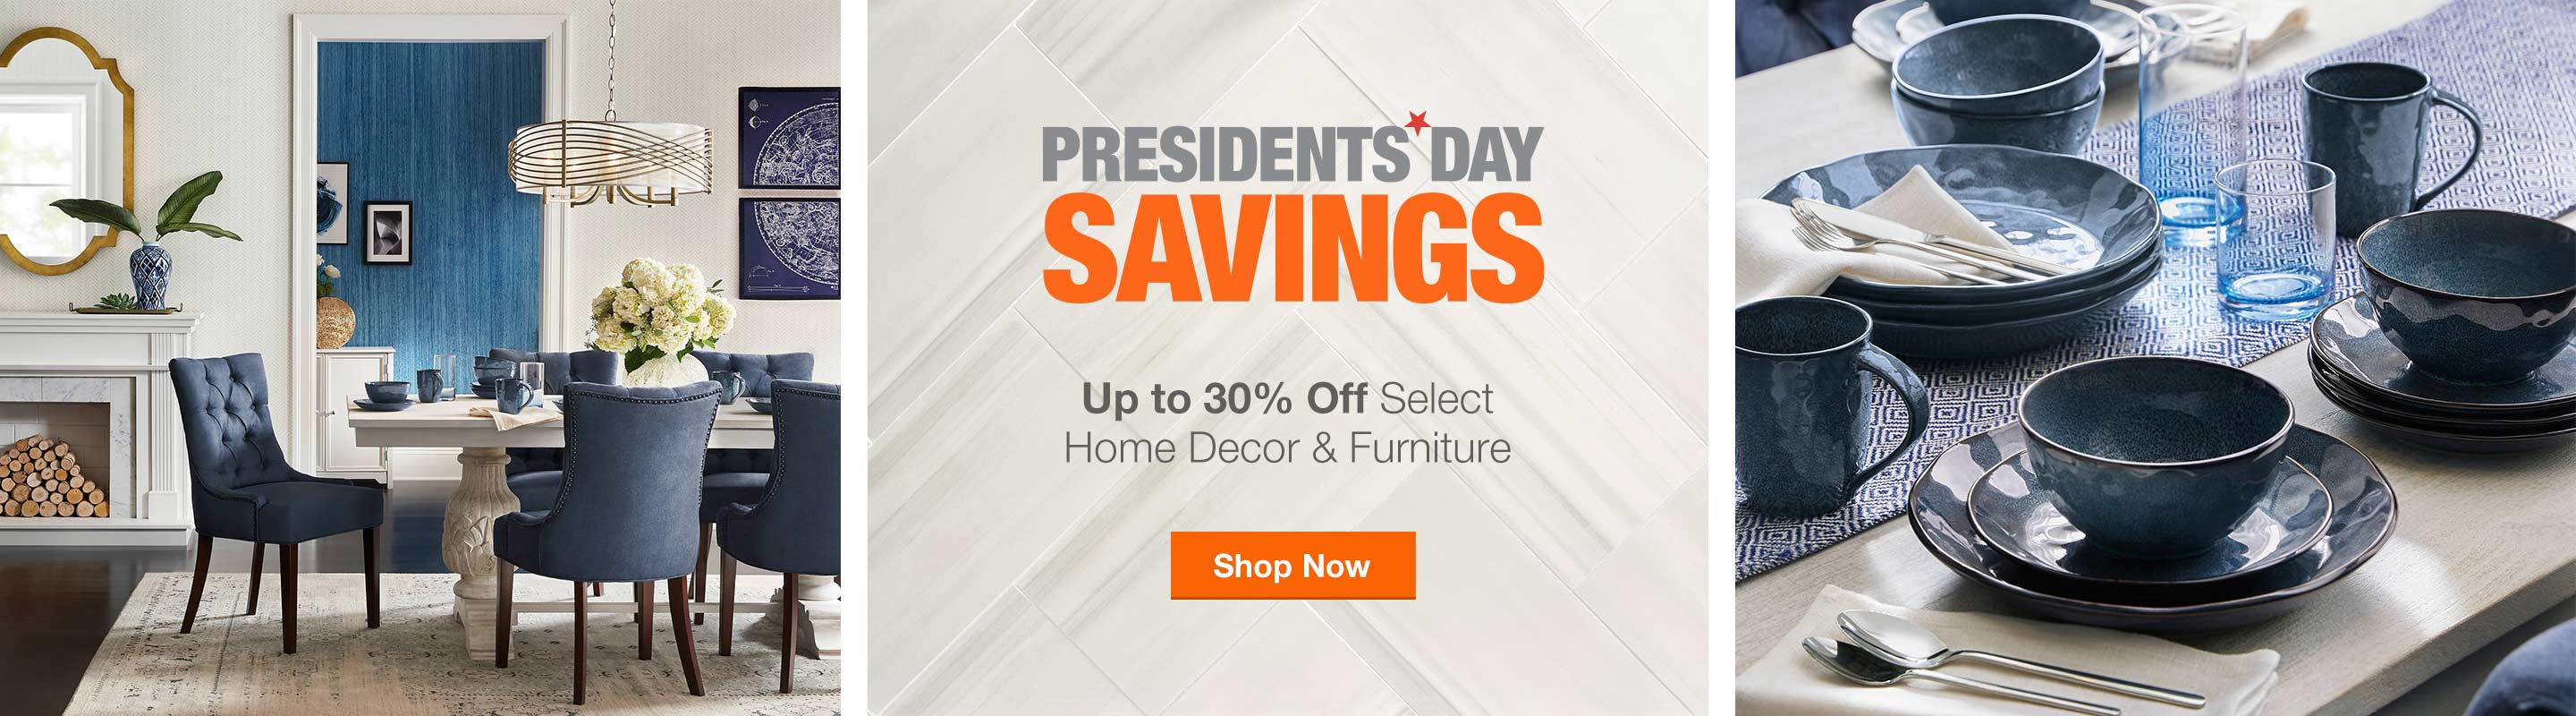 President's Day Savings - Up to 30% off Select Home Decor & Furniture